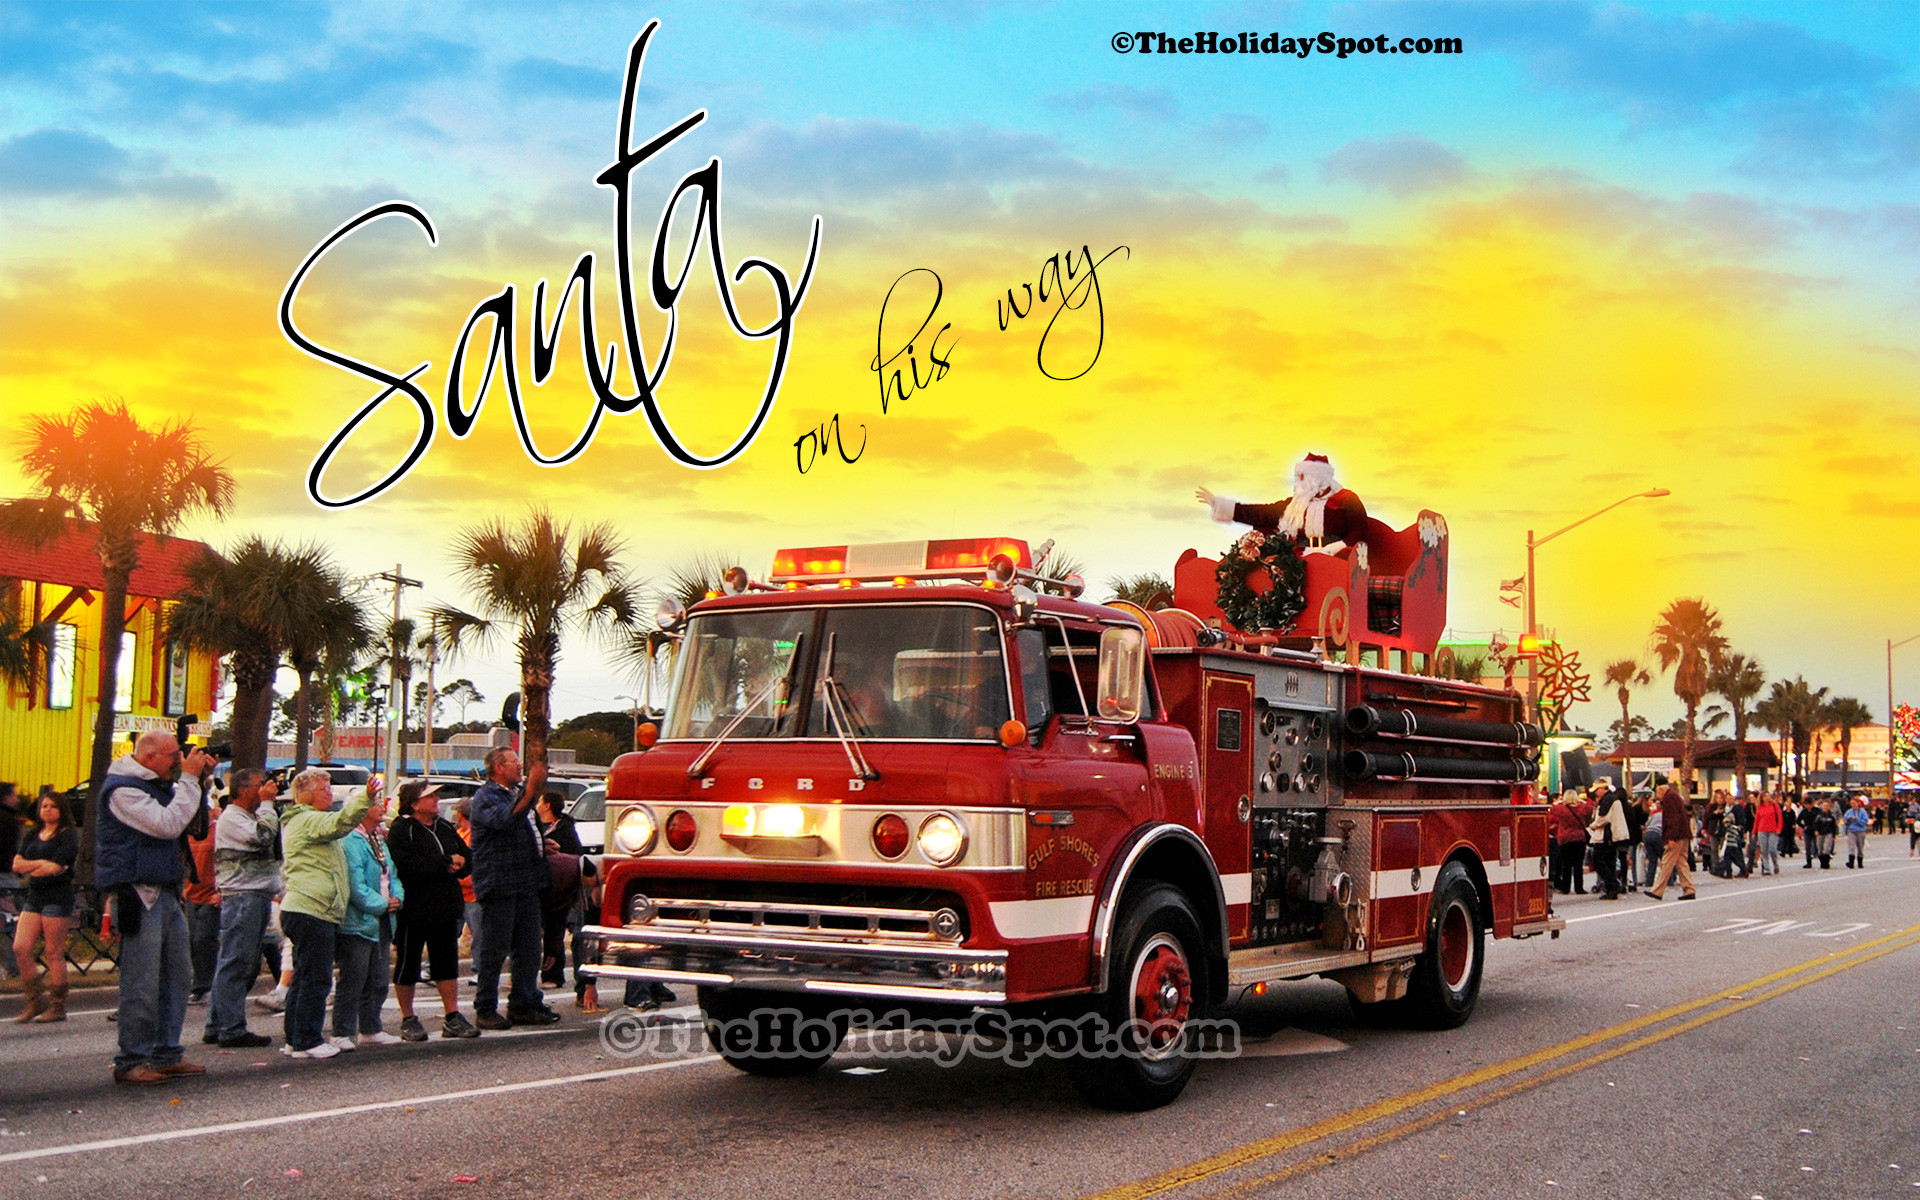 Res: 1920x1200, Christmas wallpaper of Santa coming to town on a firefighter truck.